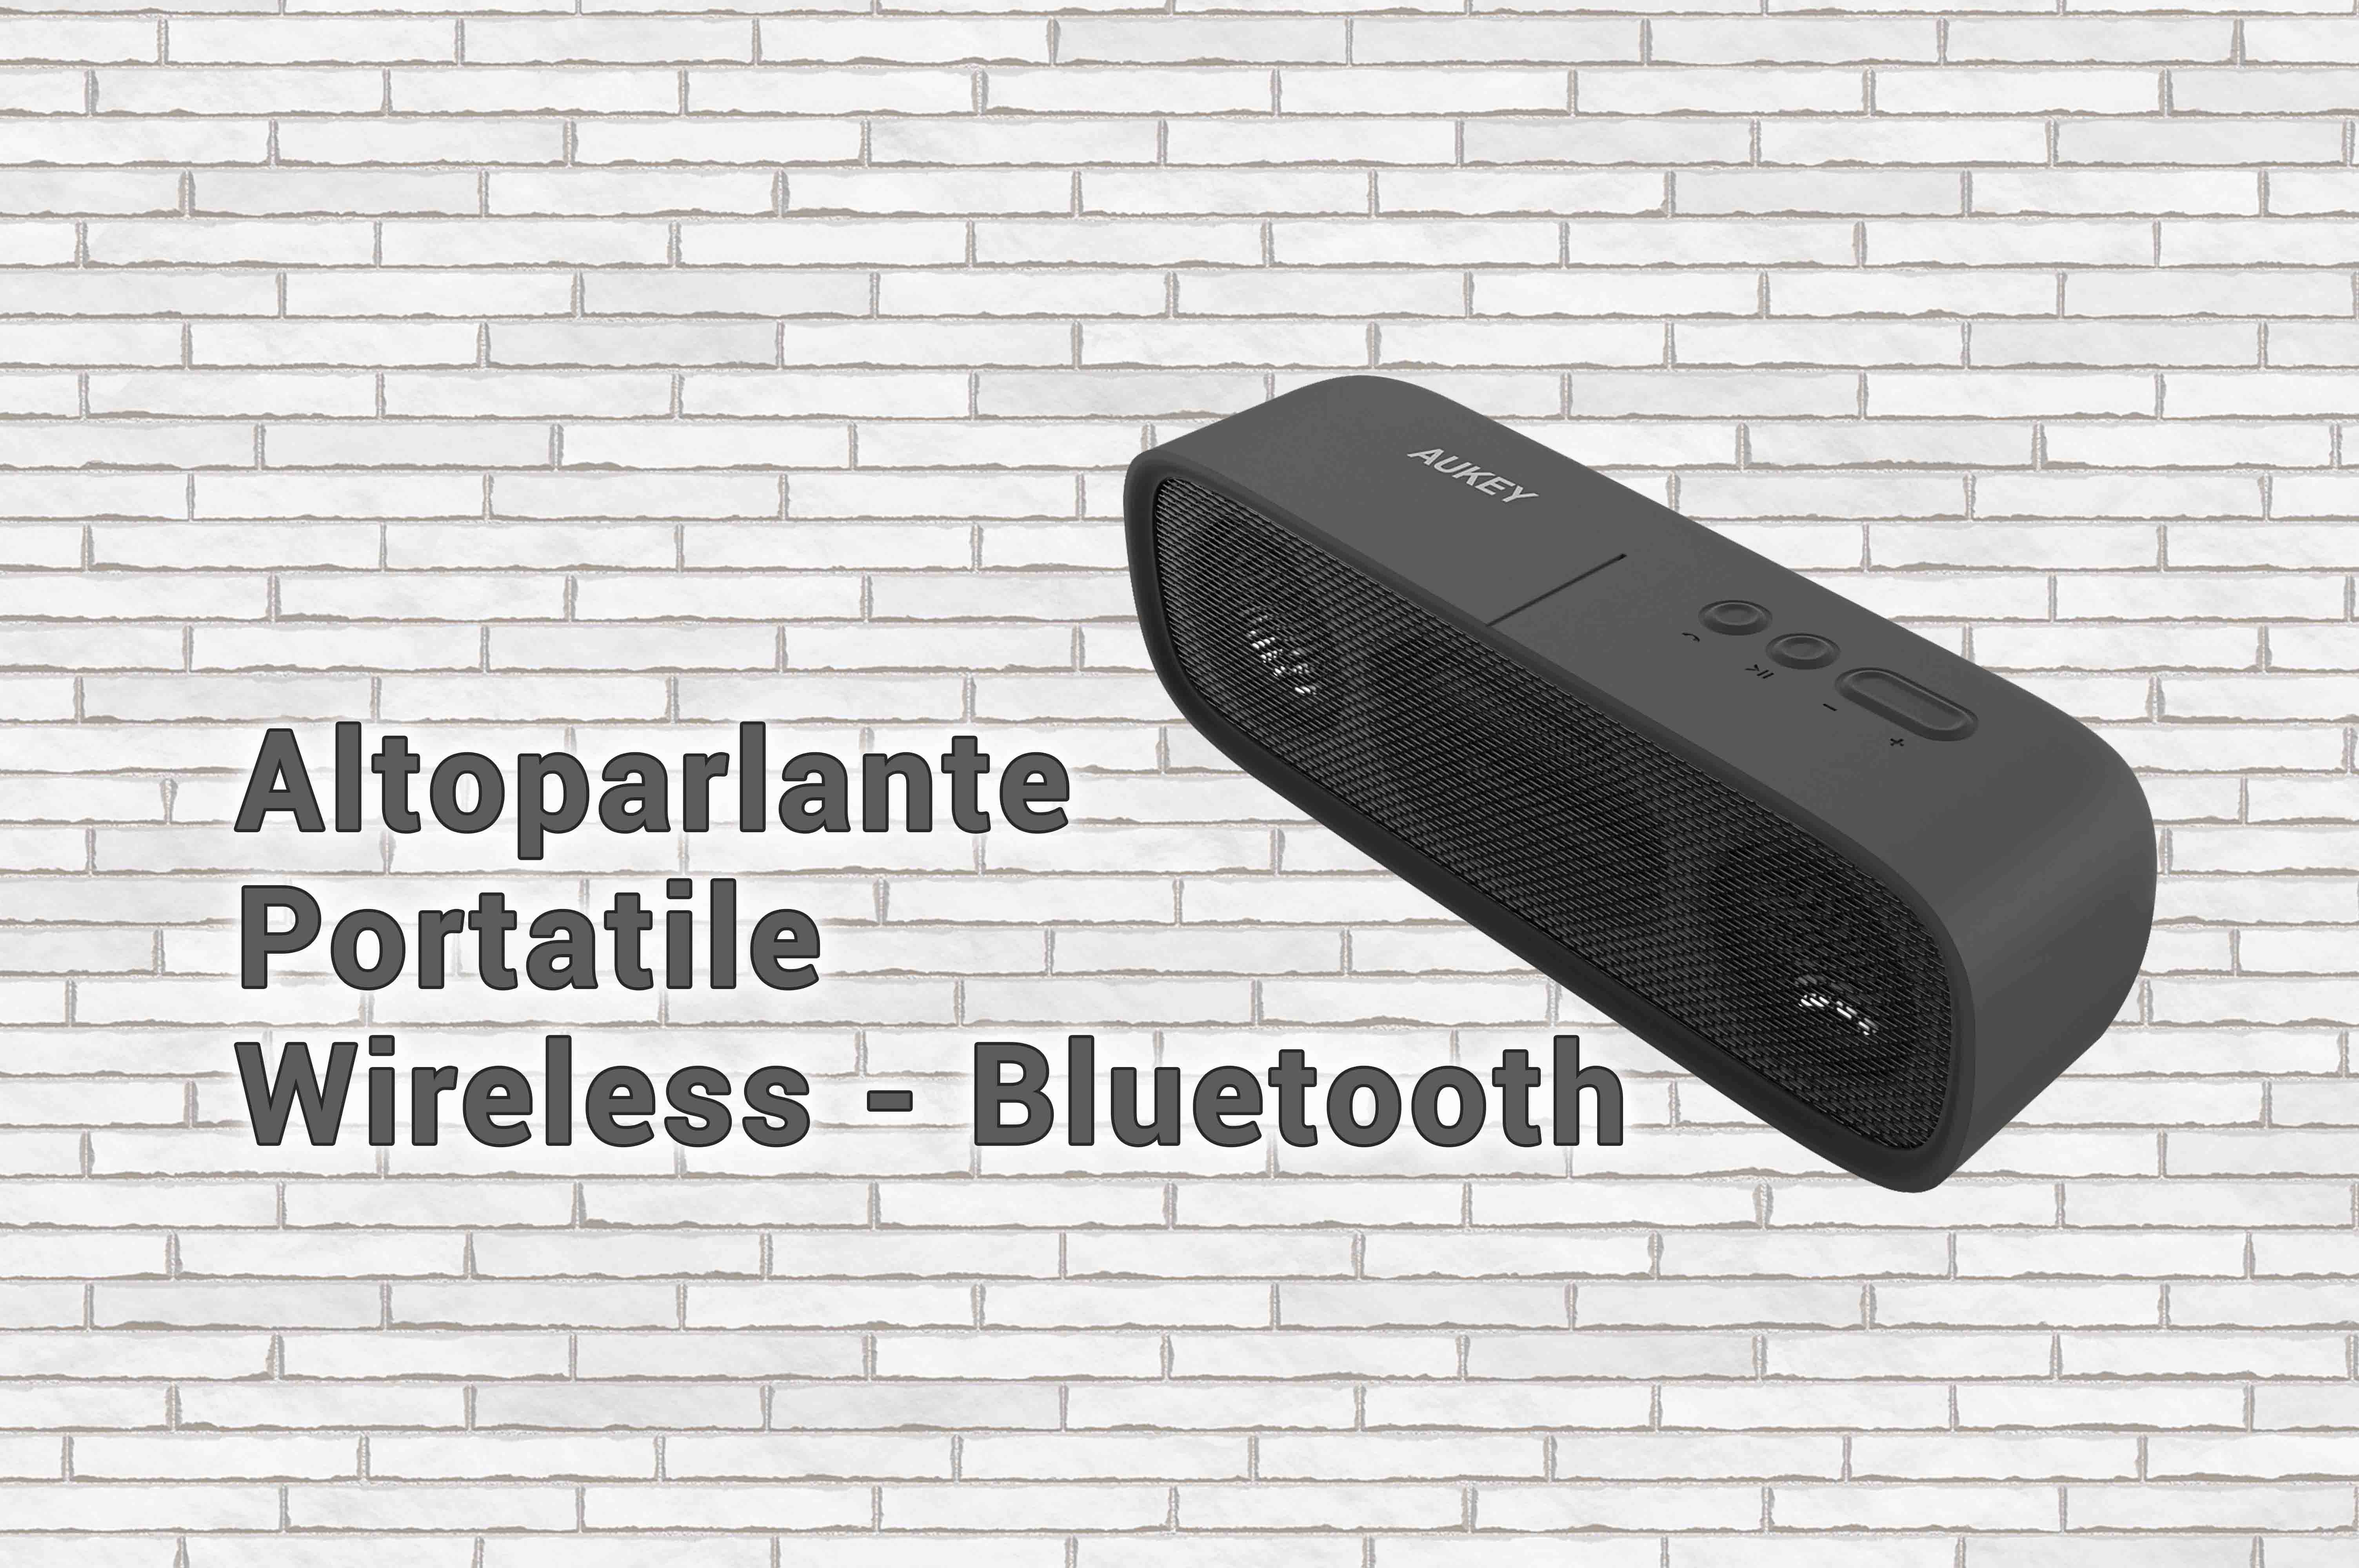 AUKEY Altoparlante Portatile Wireless